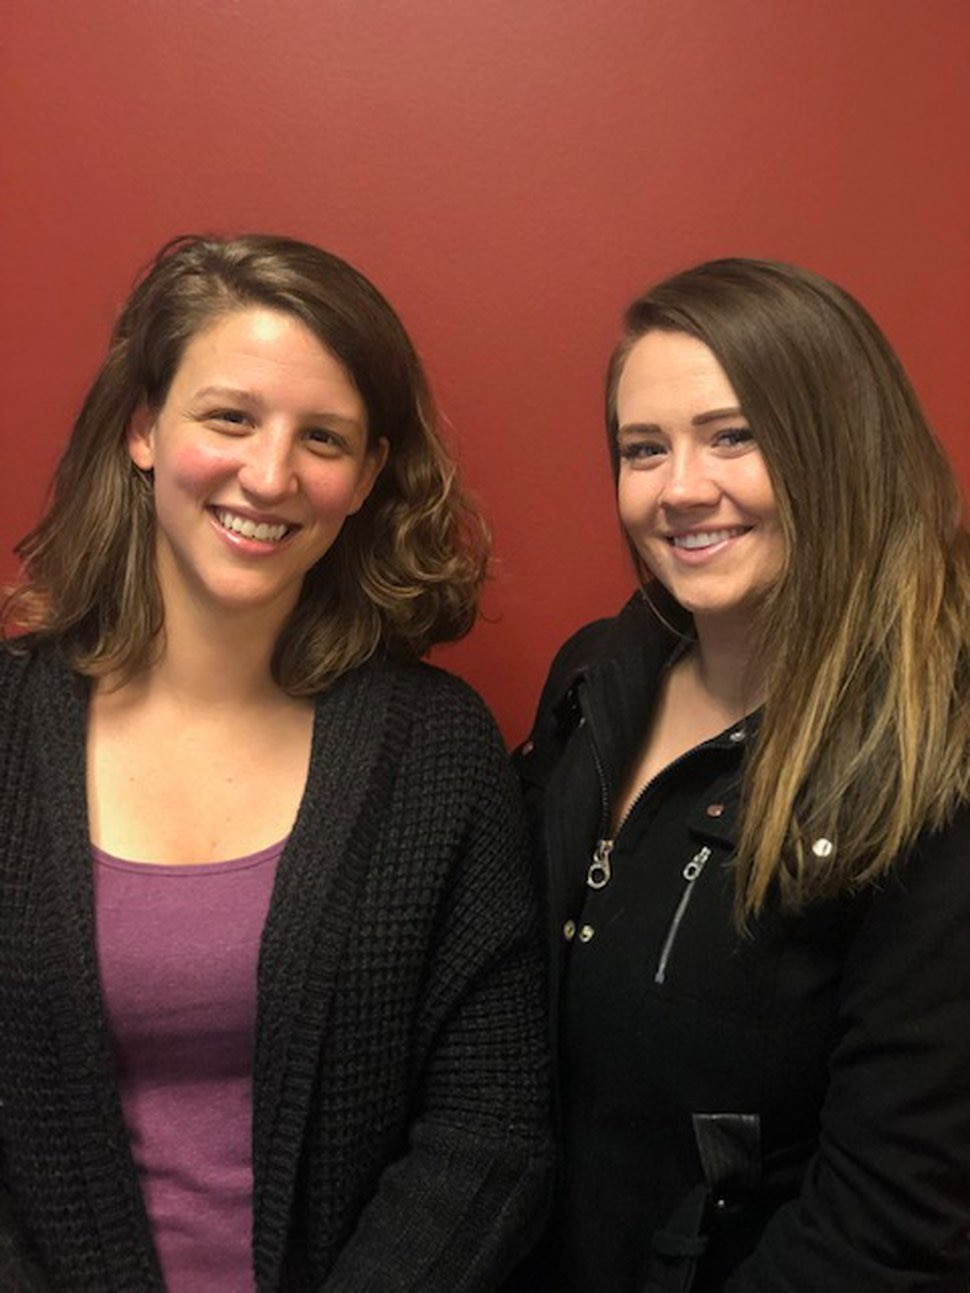 Lucy Izard and Natasha Fjeldsted are students in the University of Utah Master of Social Work Program